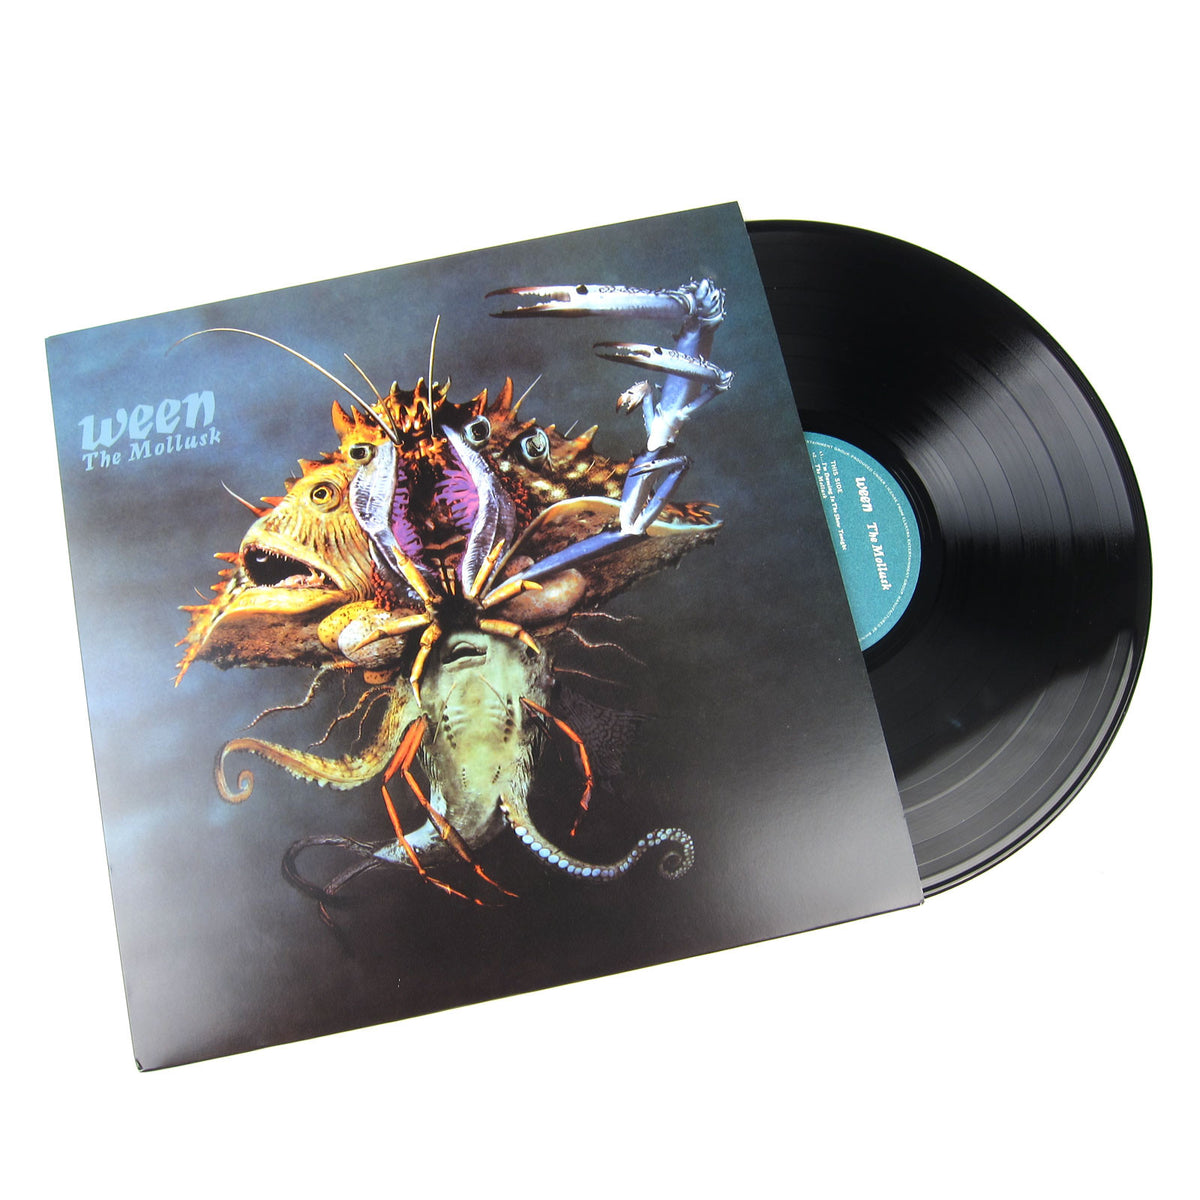 Ween: The Mollusk (180g) Vinyl LP